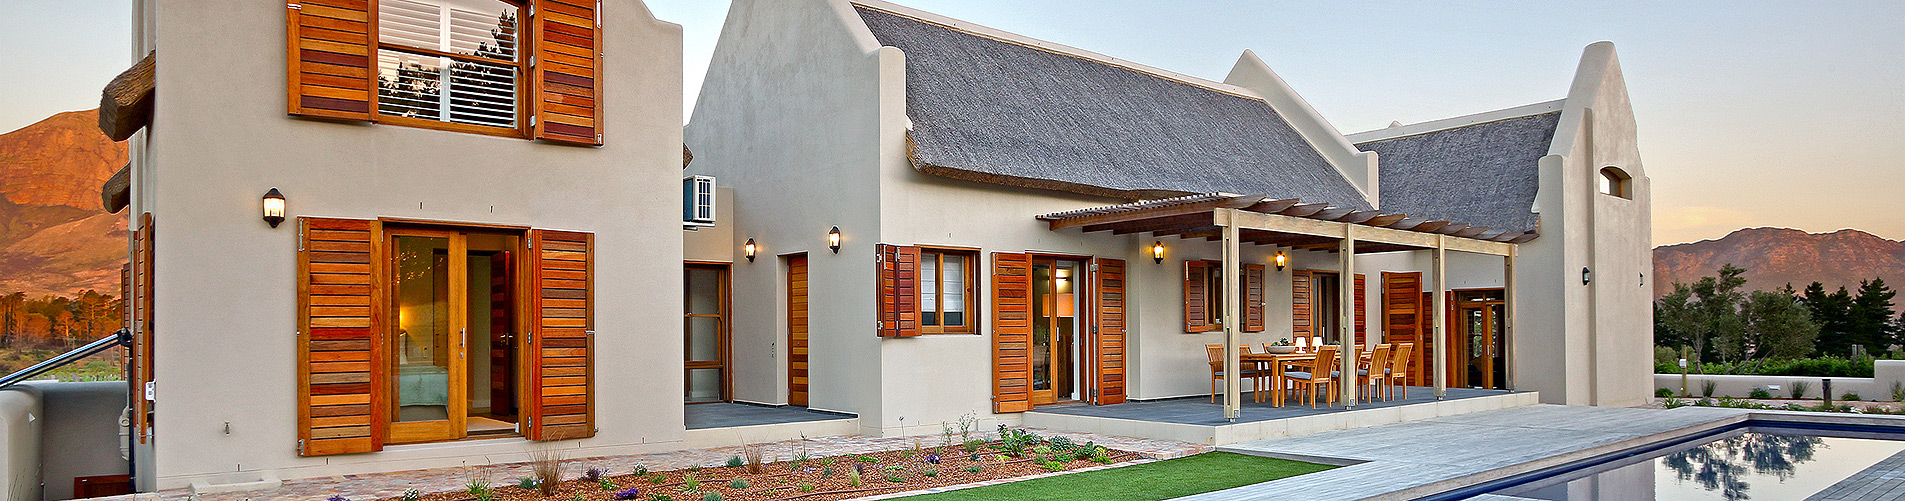 Exterior Guest House Photography in Cape Town